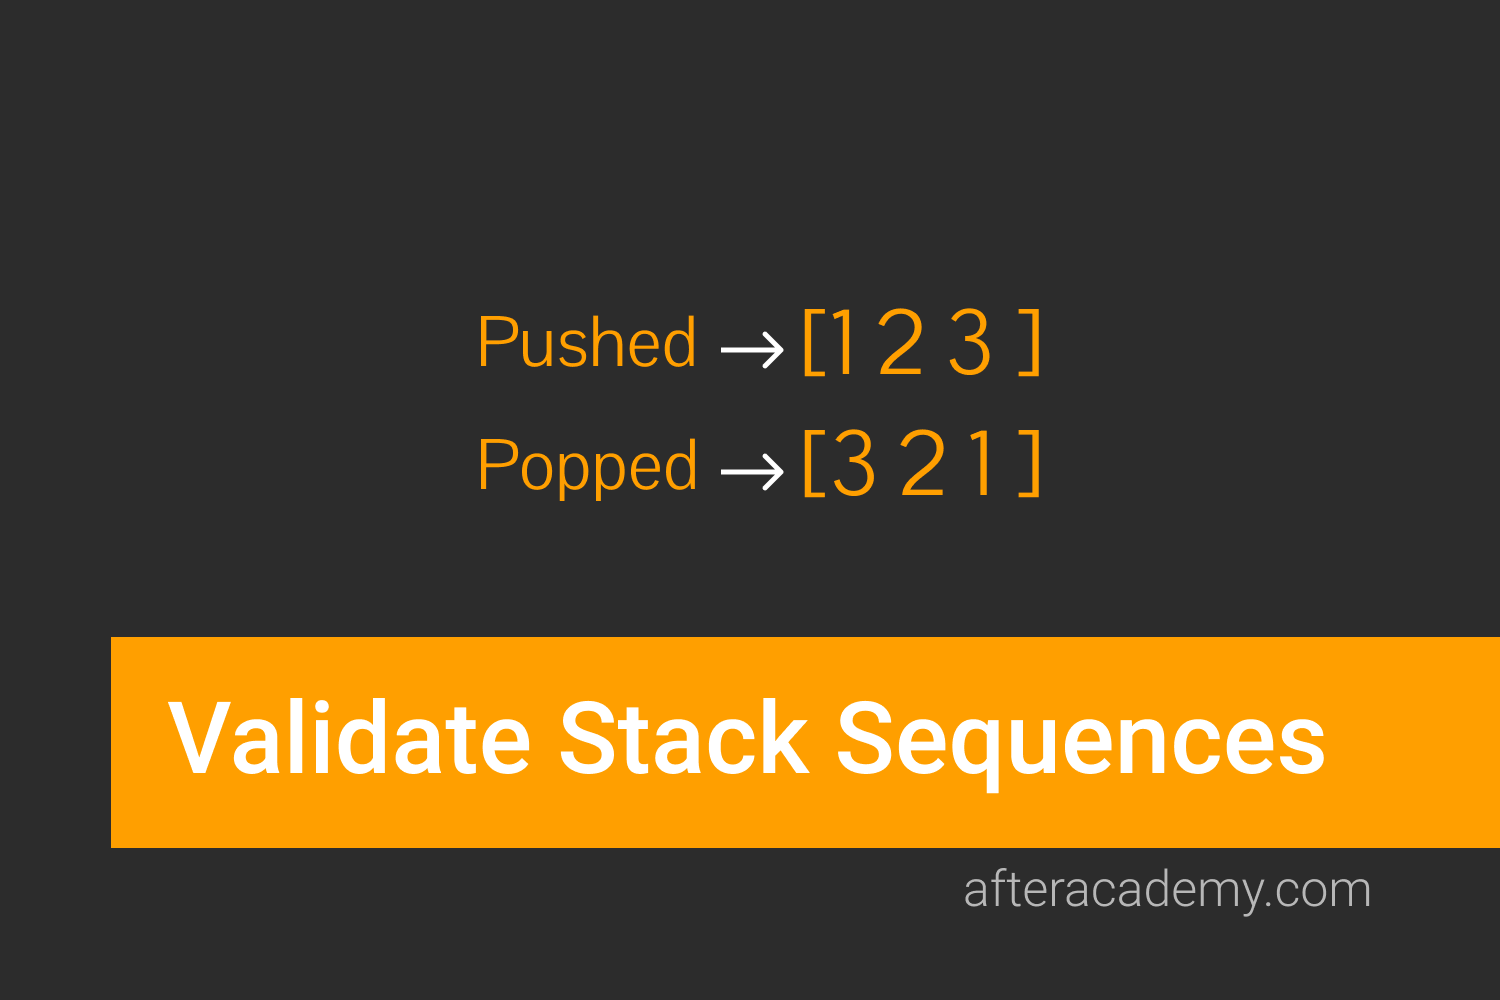 Validate Stack Sequences